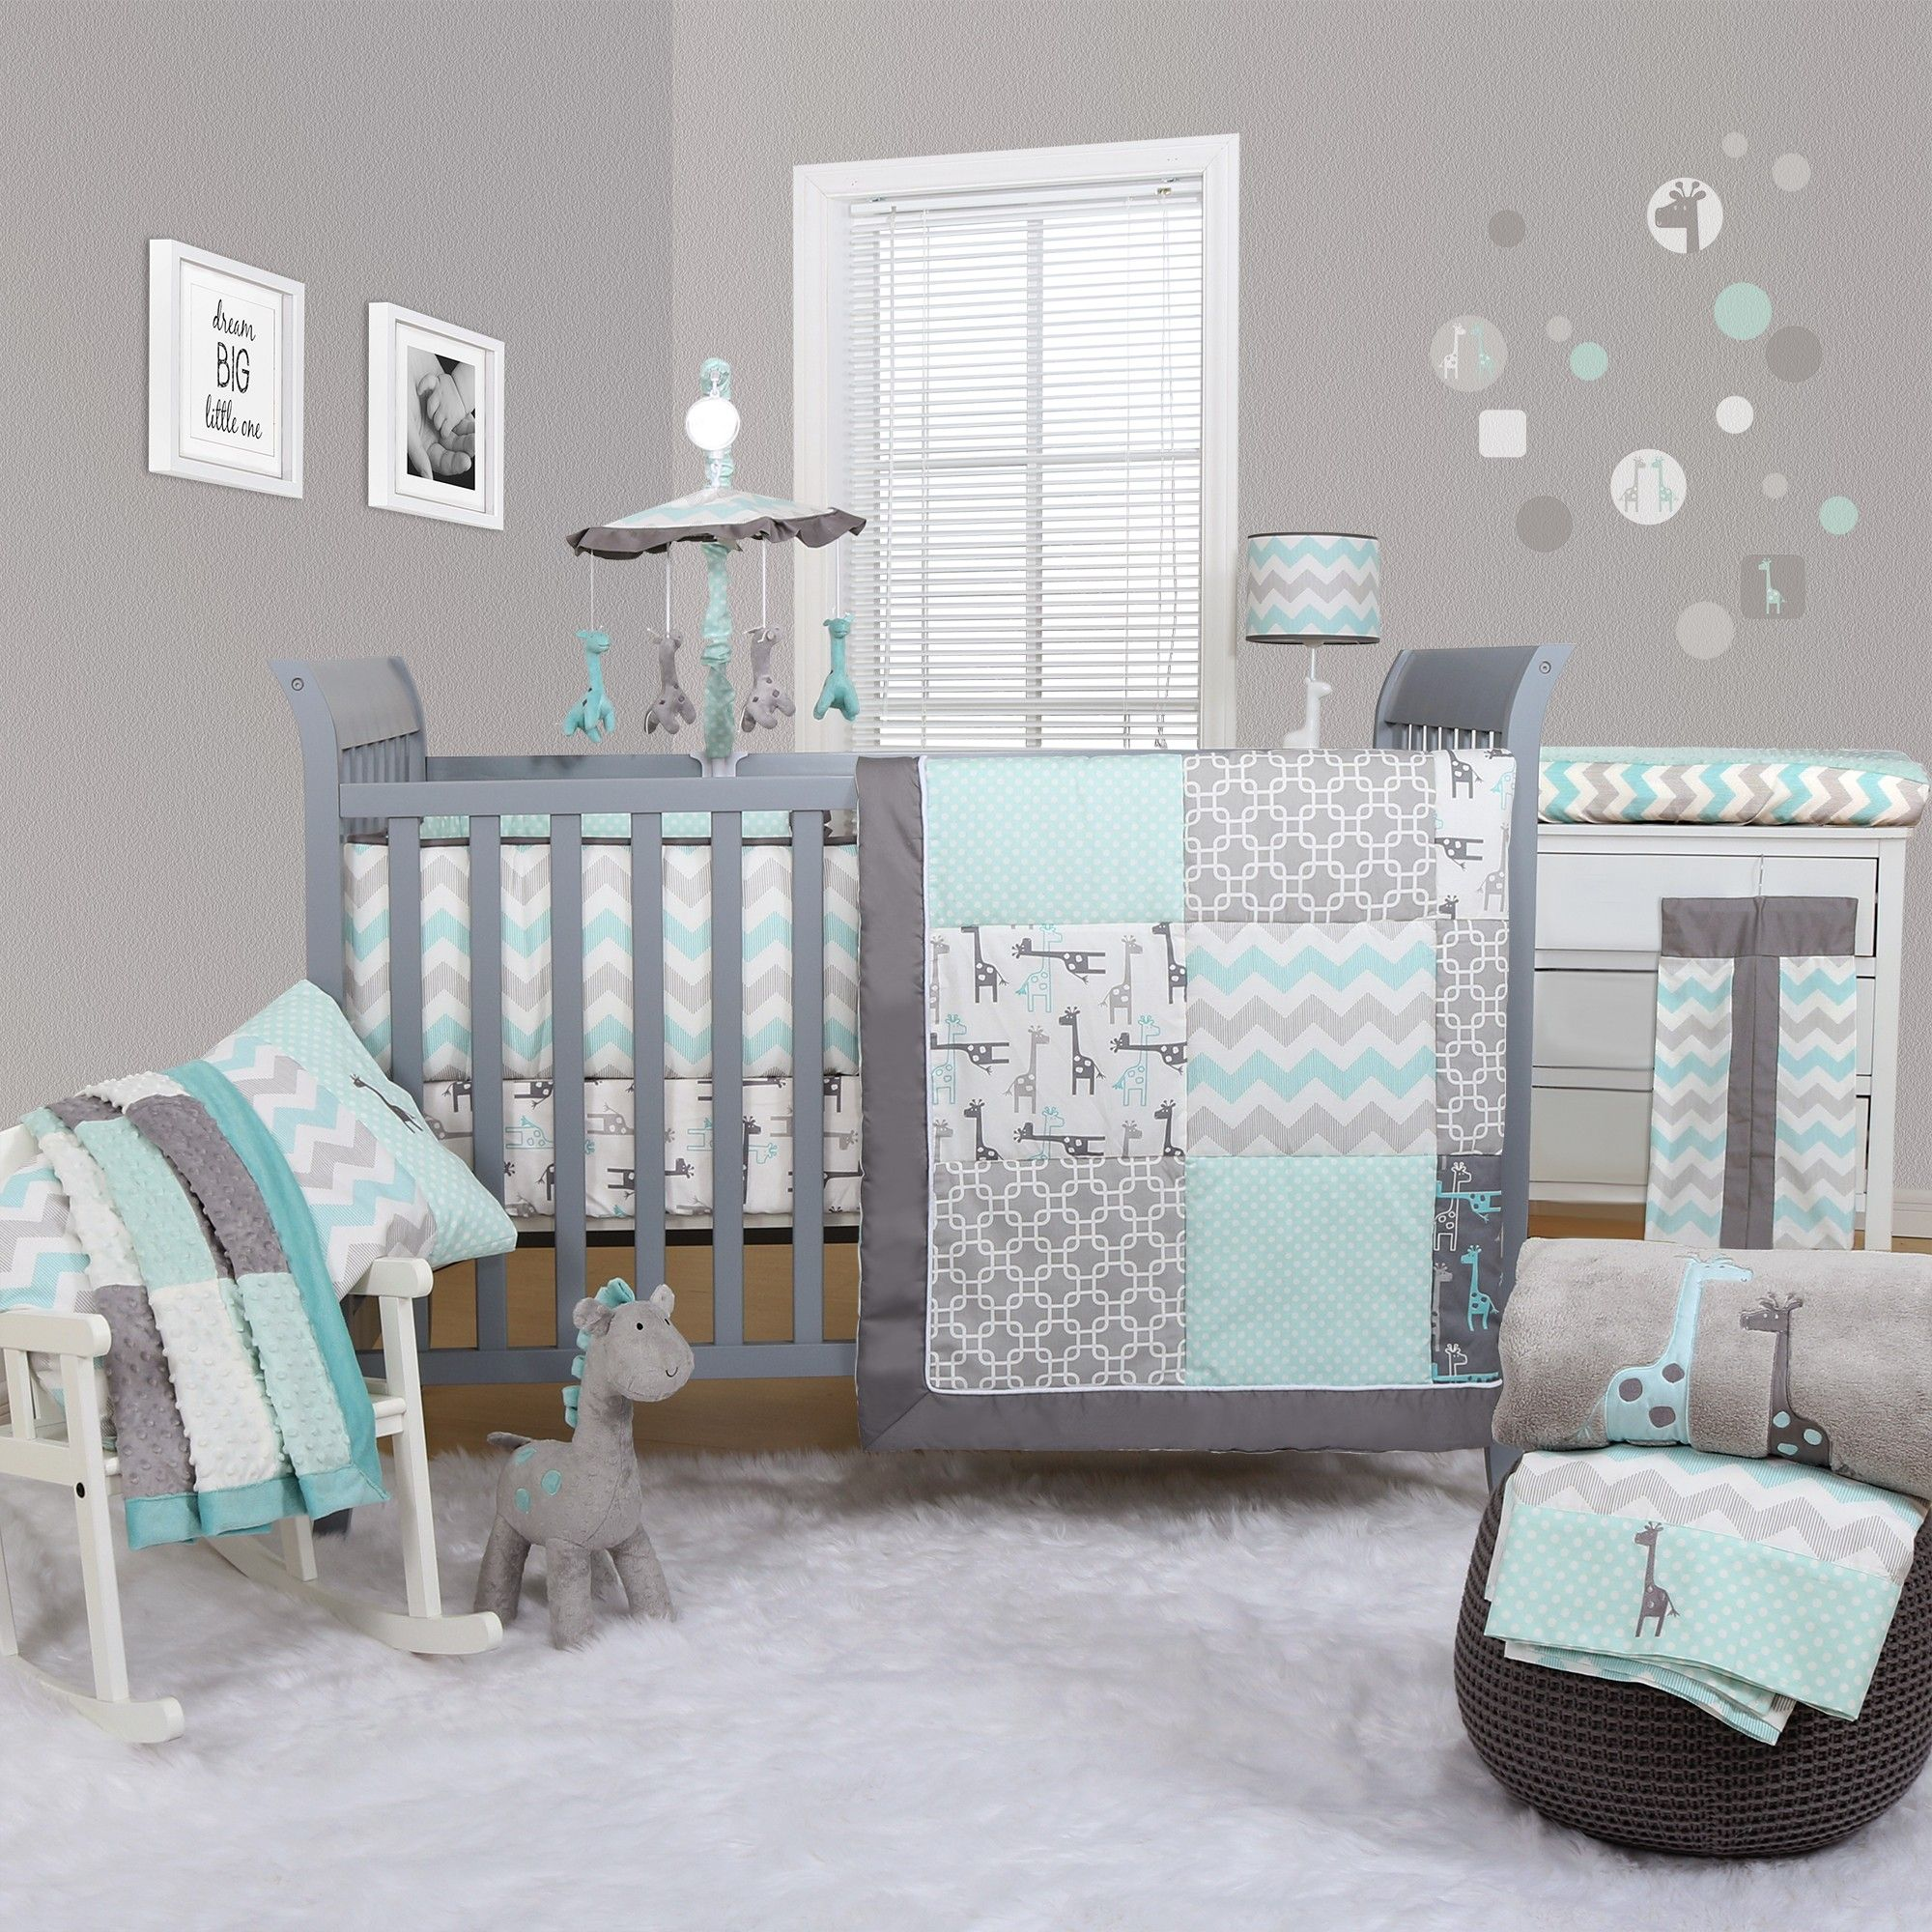 Peanut shell uptown giraffe 5 piece bedding set cot for Baby room decoration boy